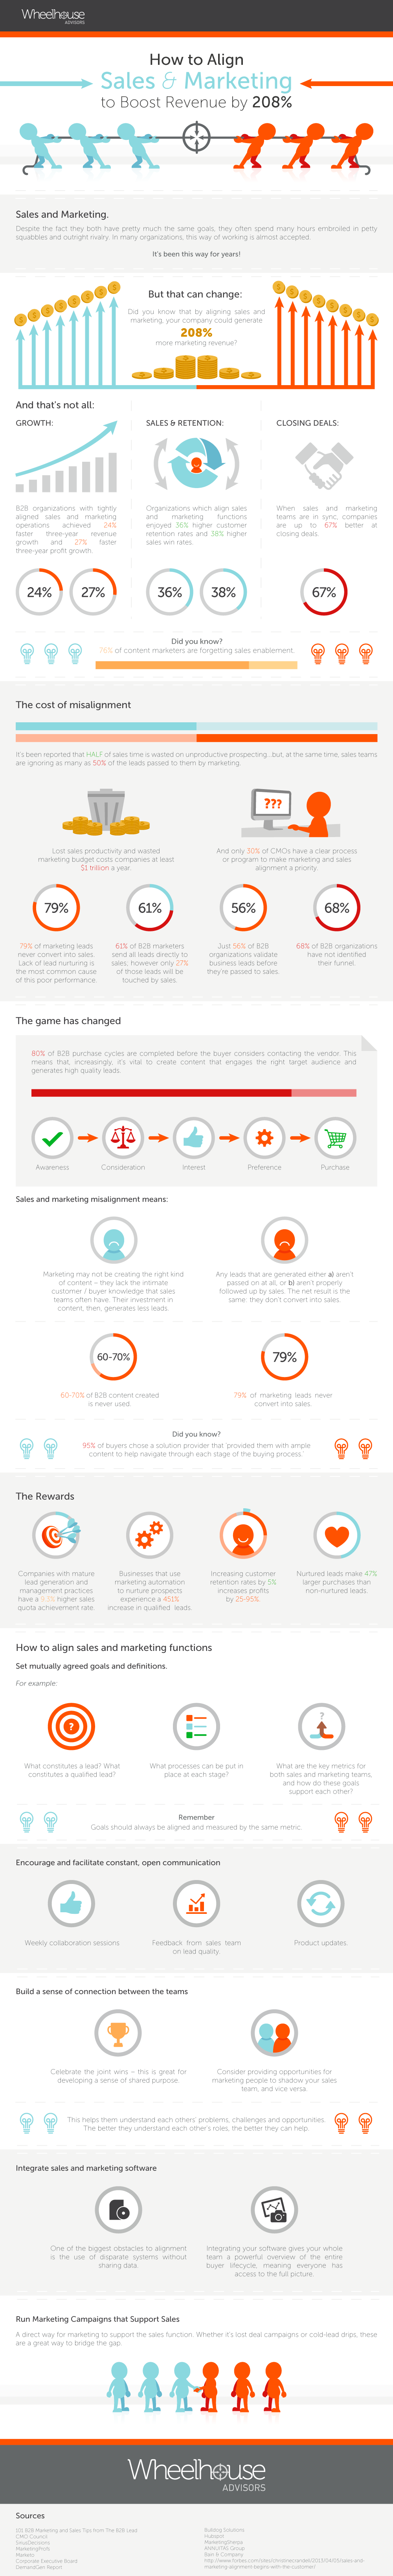 sales-and-marketing-infographic-wheelhouse.png